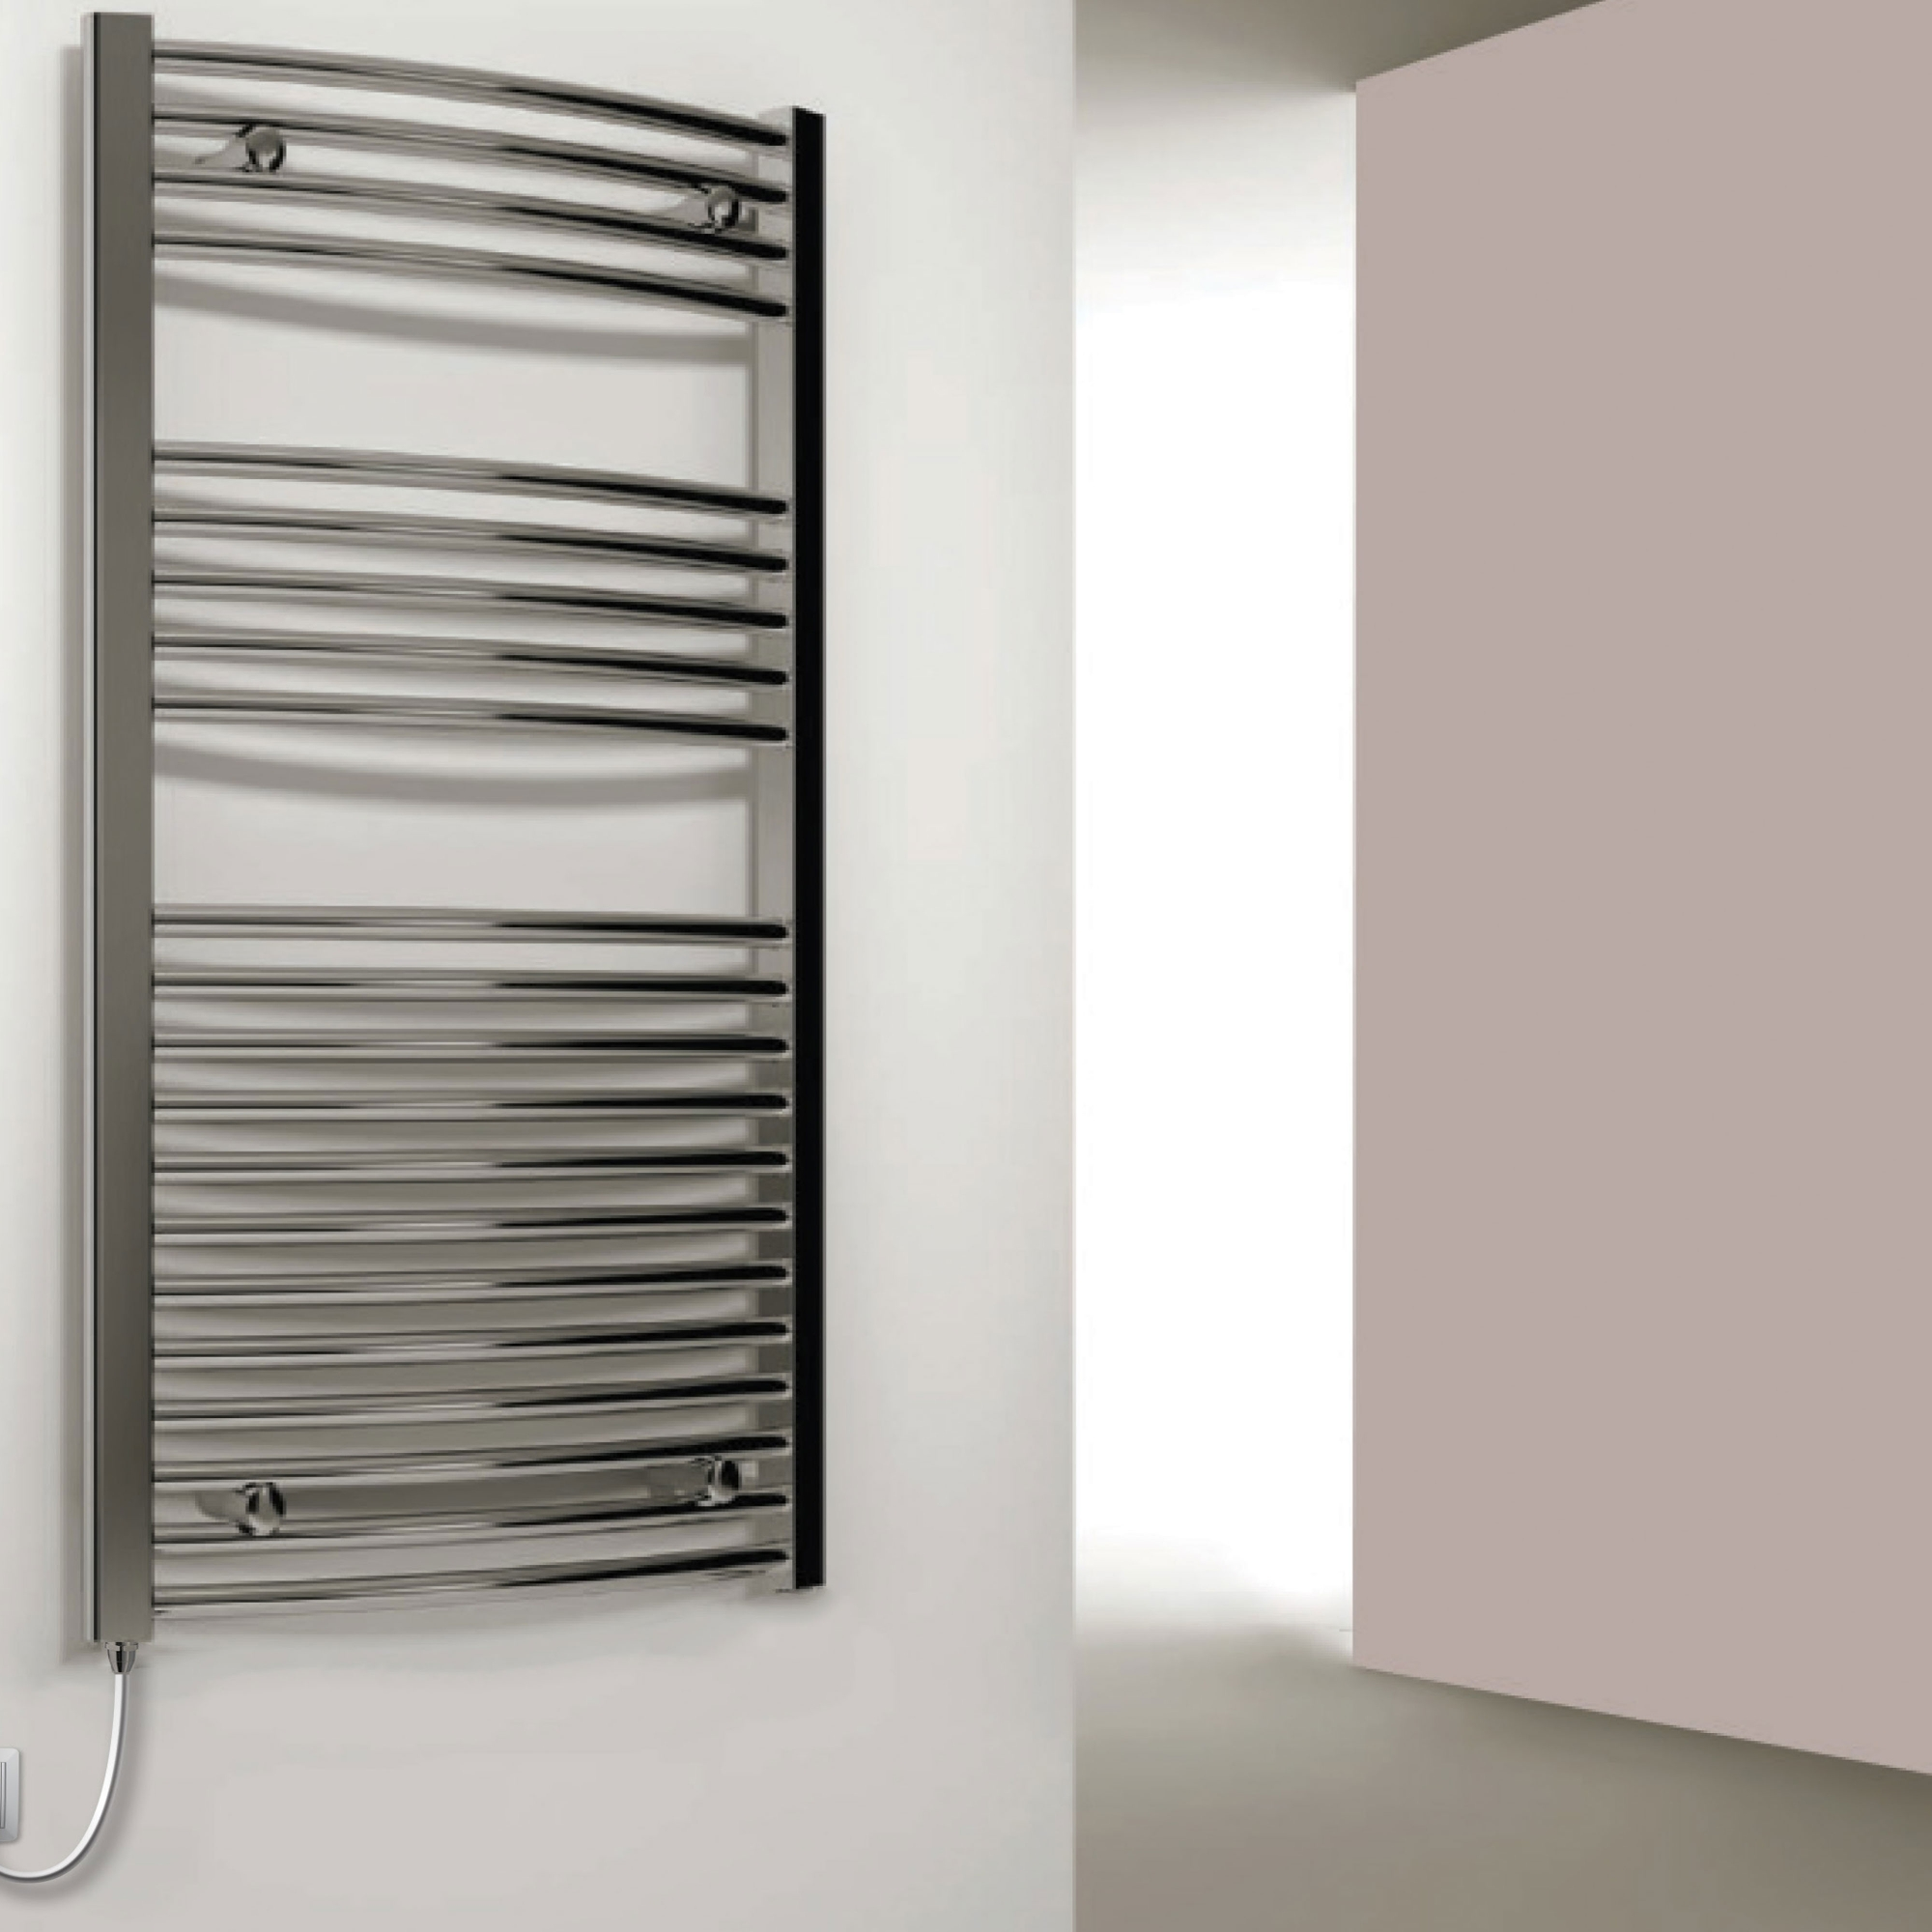 Reina Capo Curved Thermostatic Electric Heated Towel Rail 1000mm H x 400mm W Chrome